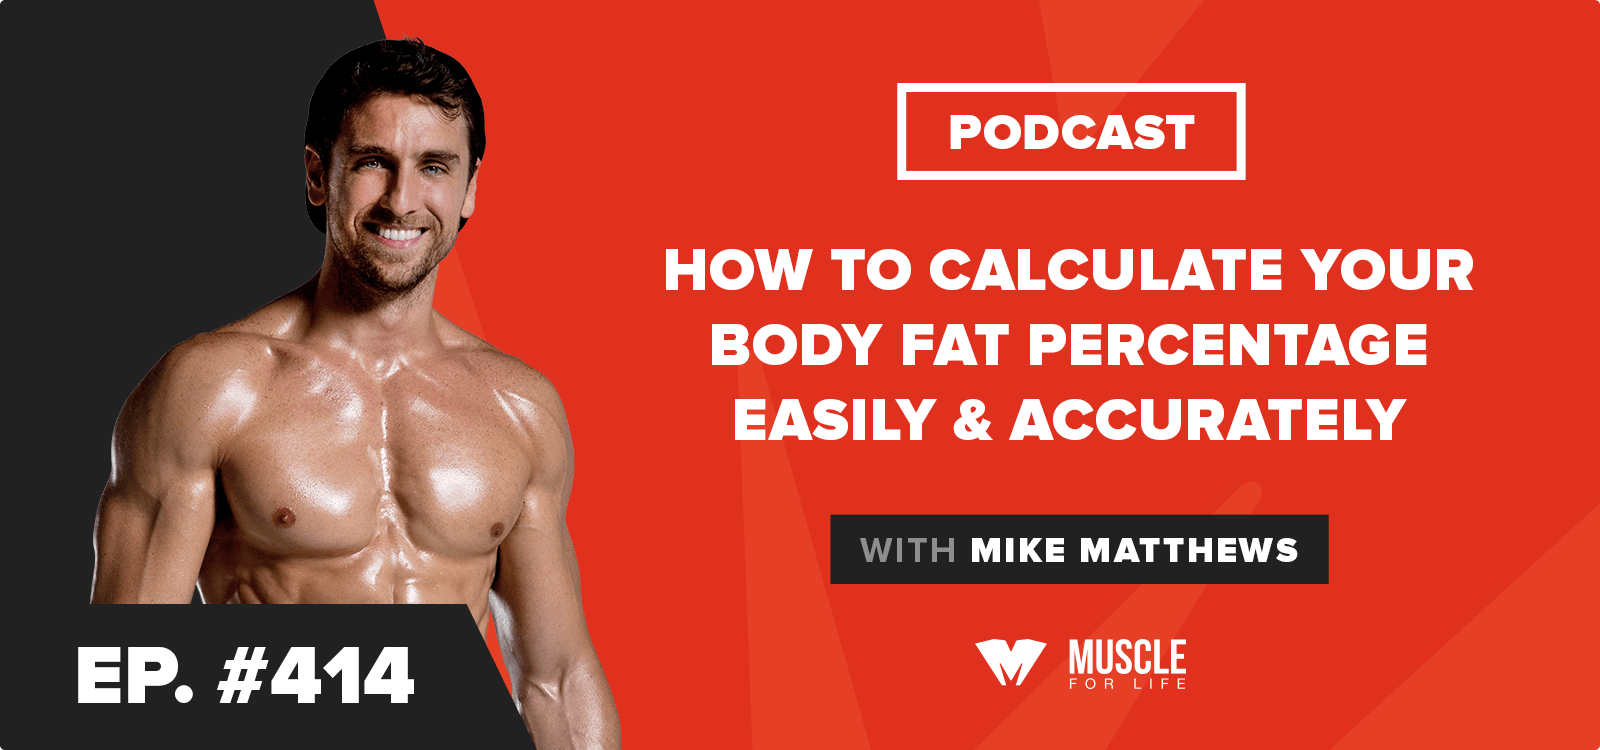 How to Calculate Your Body Fat Percentage Easily & Accurately